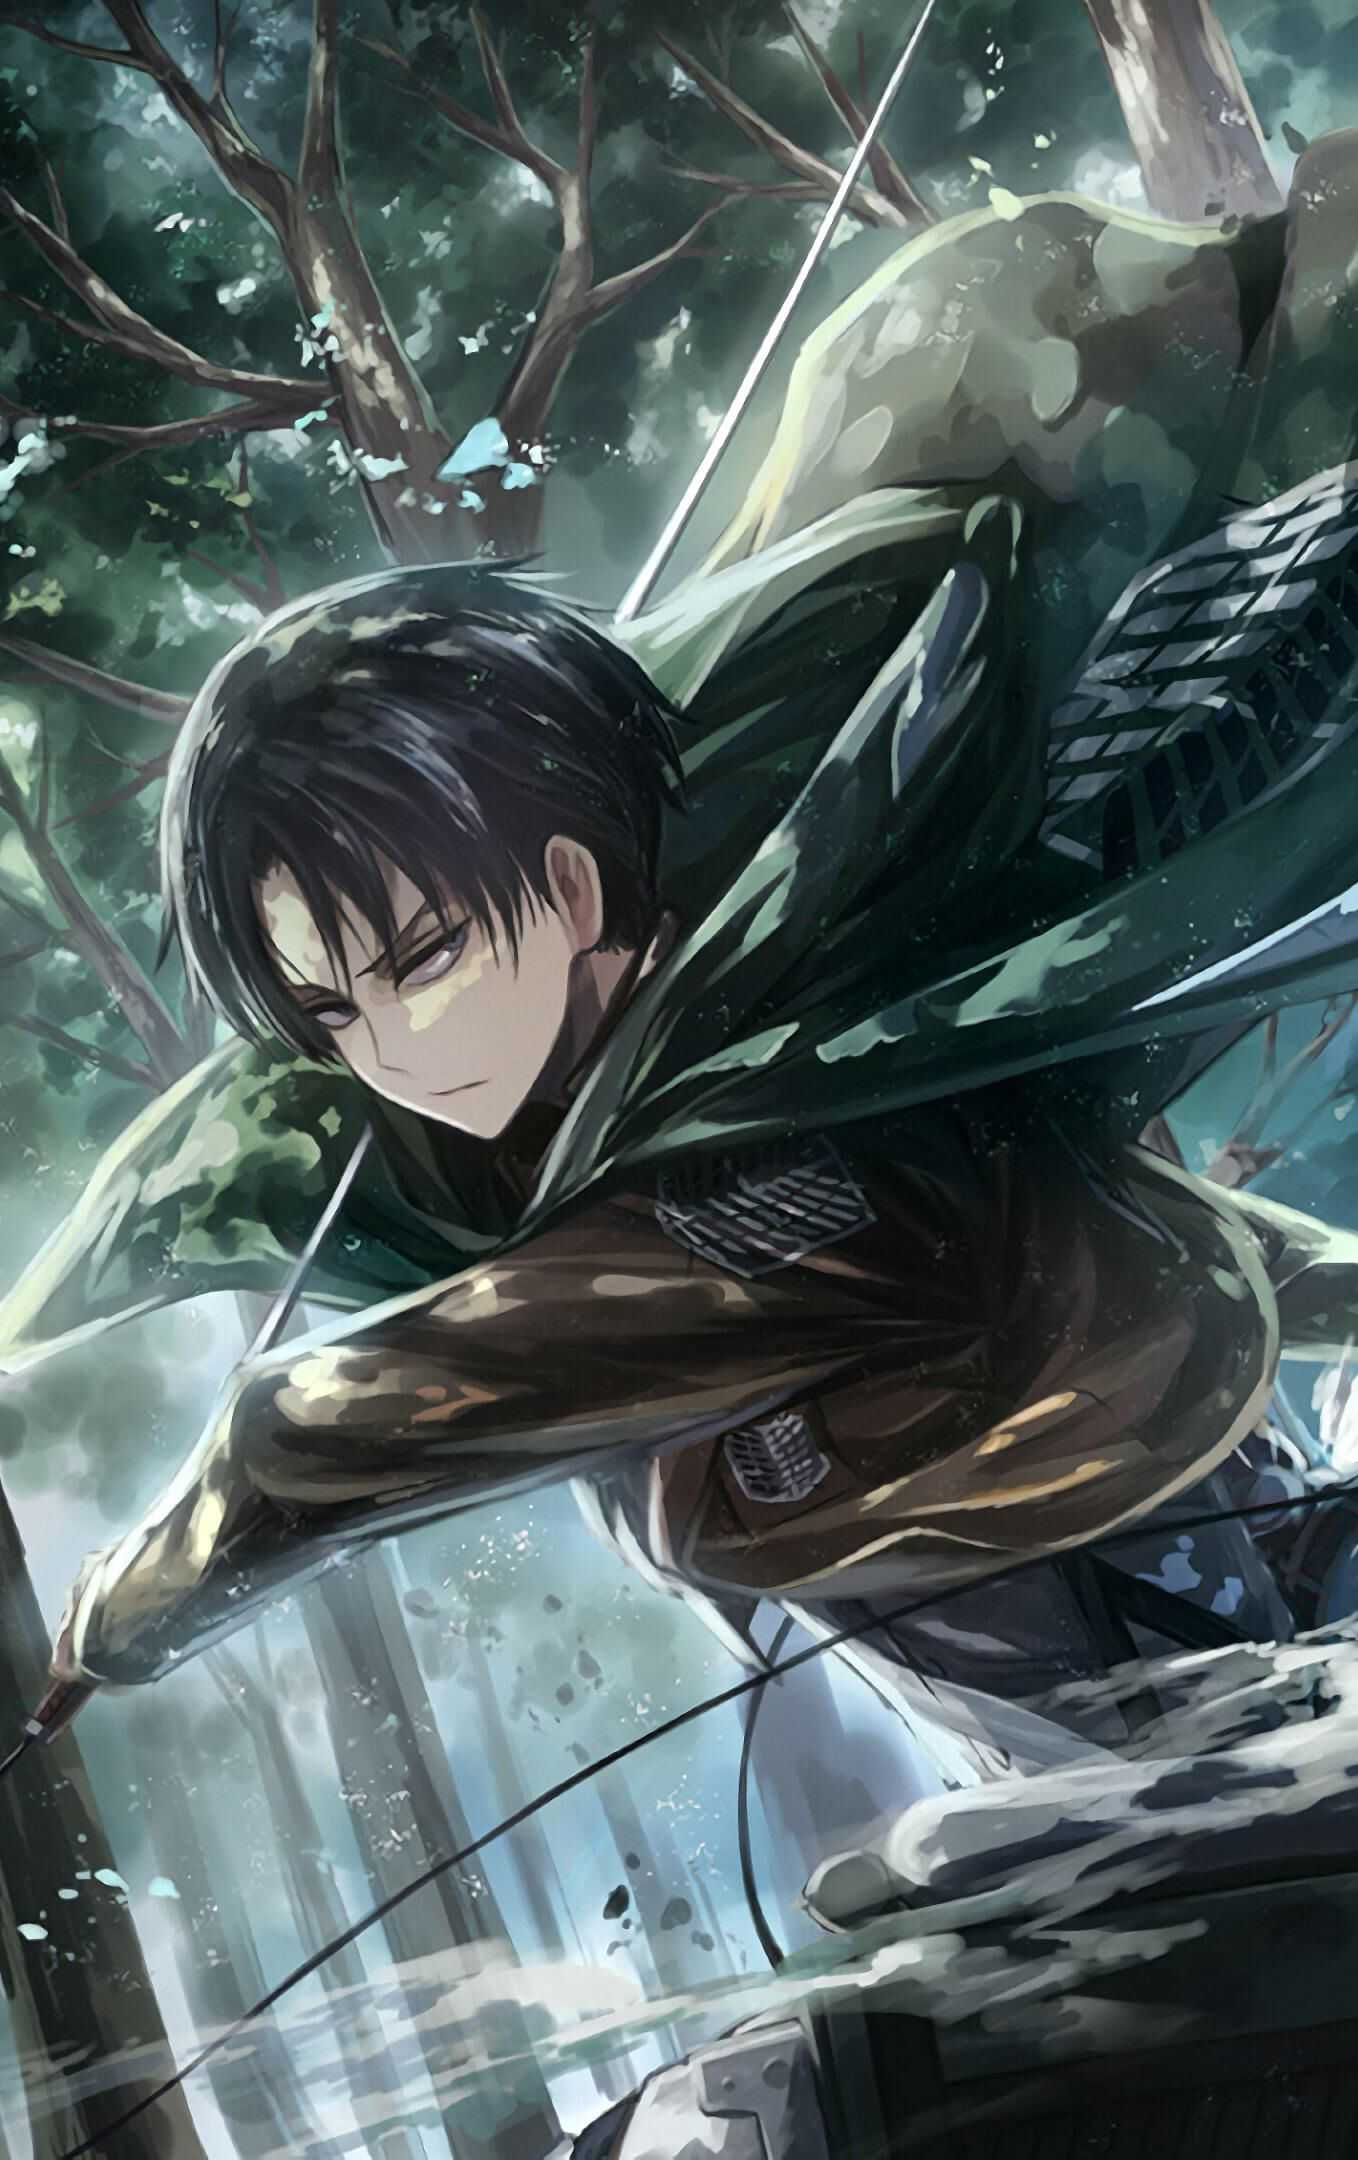 Aot Levi Ackerman Wallpaper Kolpaper Awesome Free Hd Wallpapers 309,795 likes · 812,013 talking about this. aot levi ackerman wallpaper kolpaper